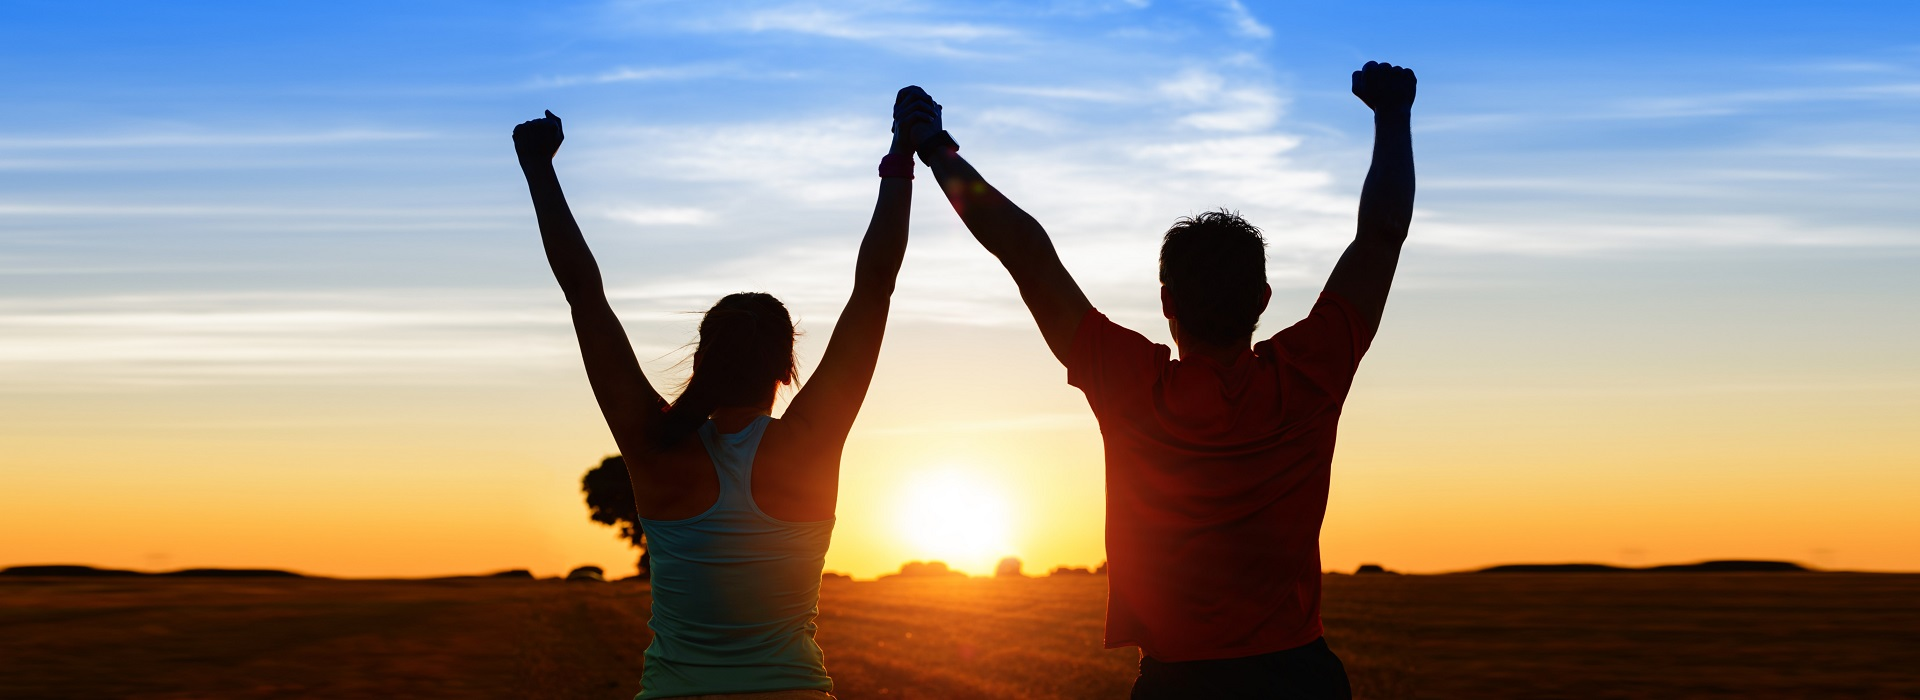 male and female holding hands raising arms together looking at the sunset